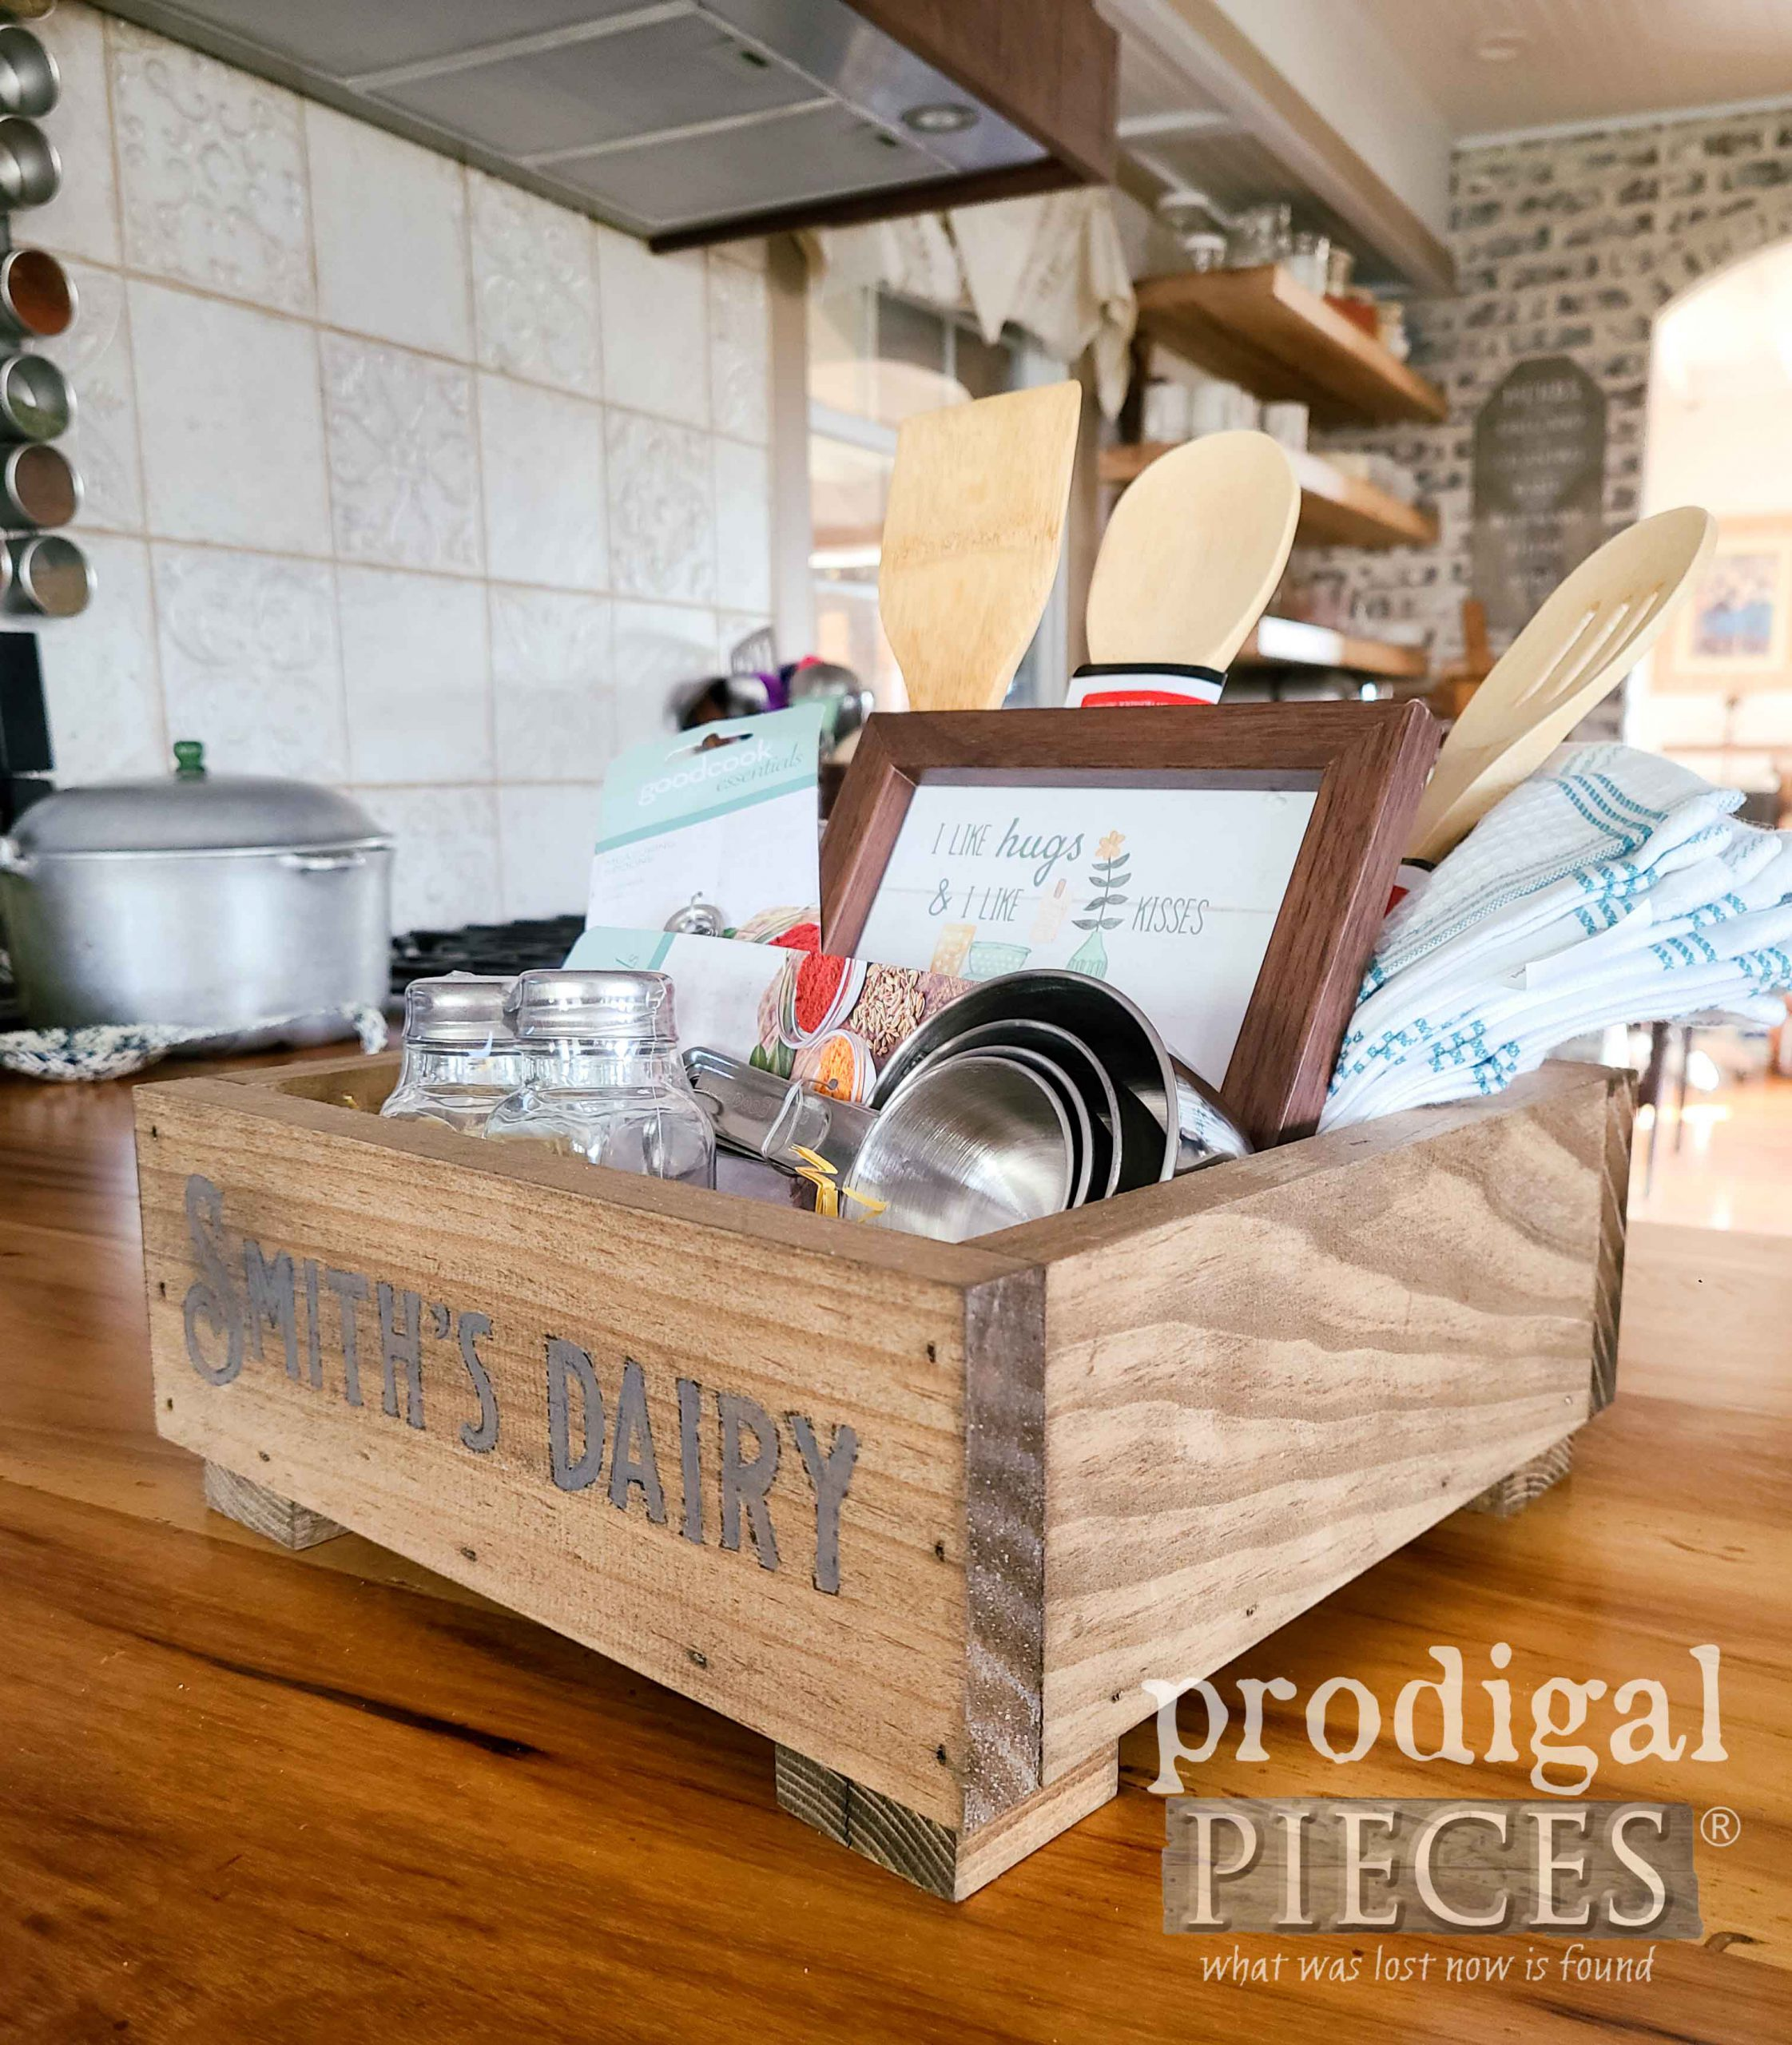 Handmade DIY Wooden Kitchen Gift Box for Last-Minute Gift Idea by Larissa of Prodigal Pieces | prodigalpieces.com #prodigalpieces #diy #giftidea #christmas #farmhouse #homedecor